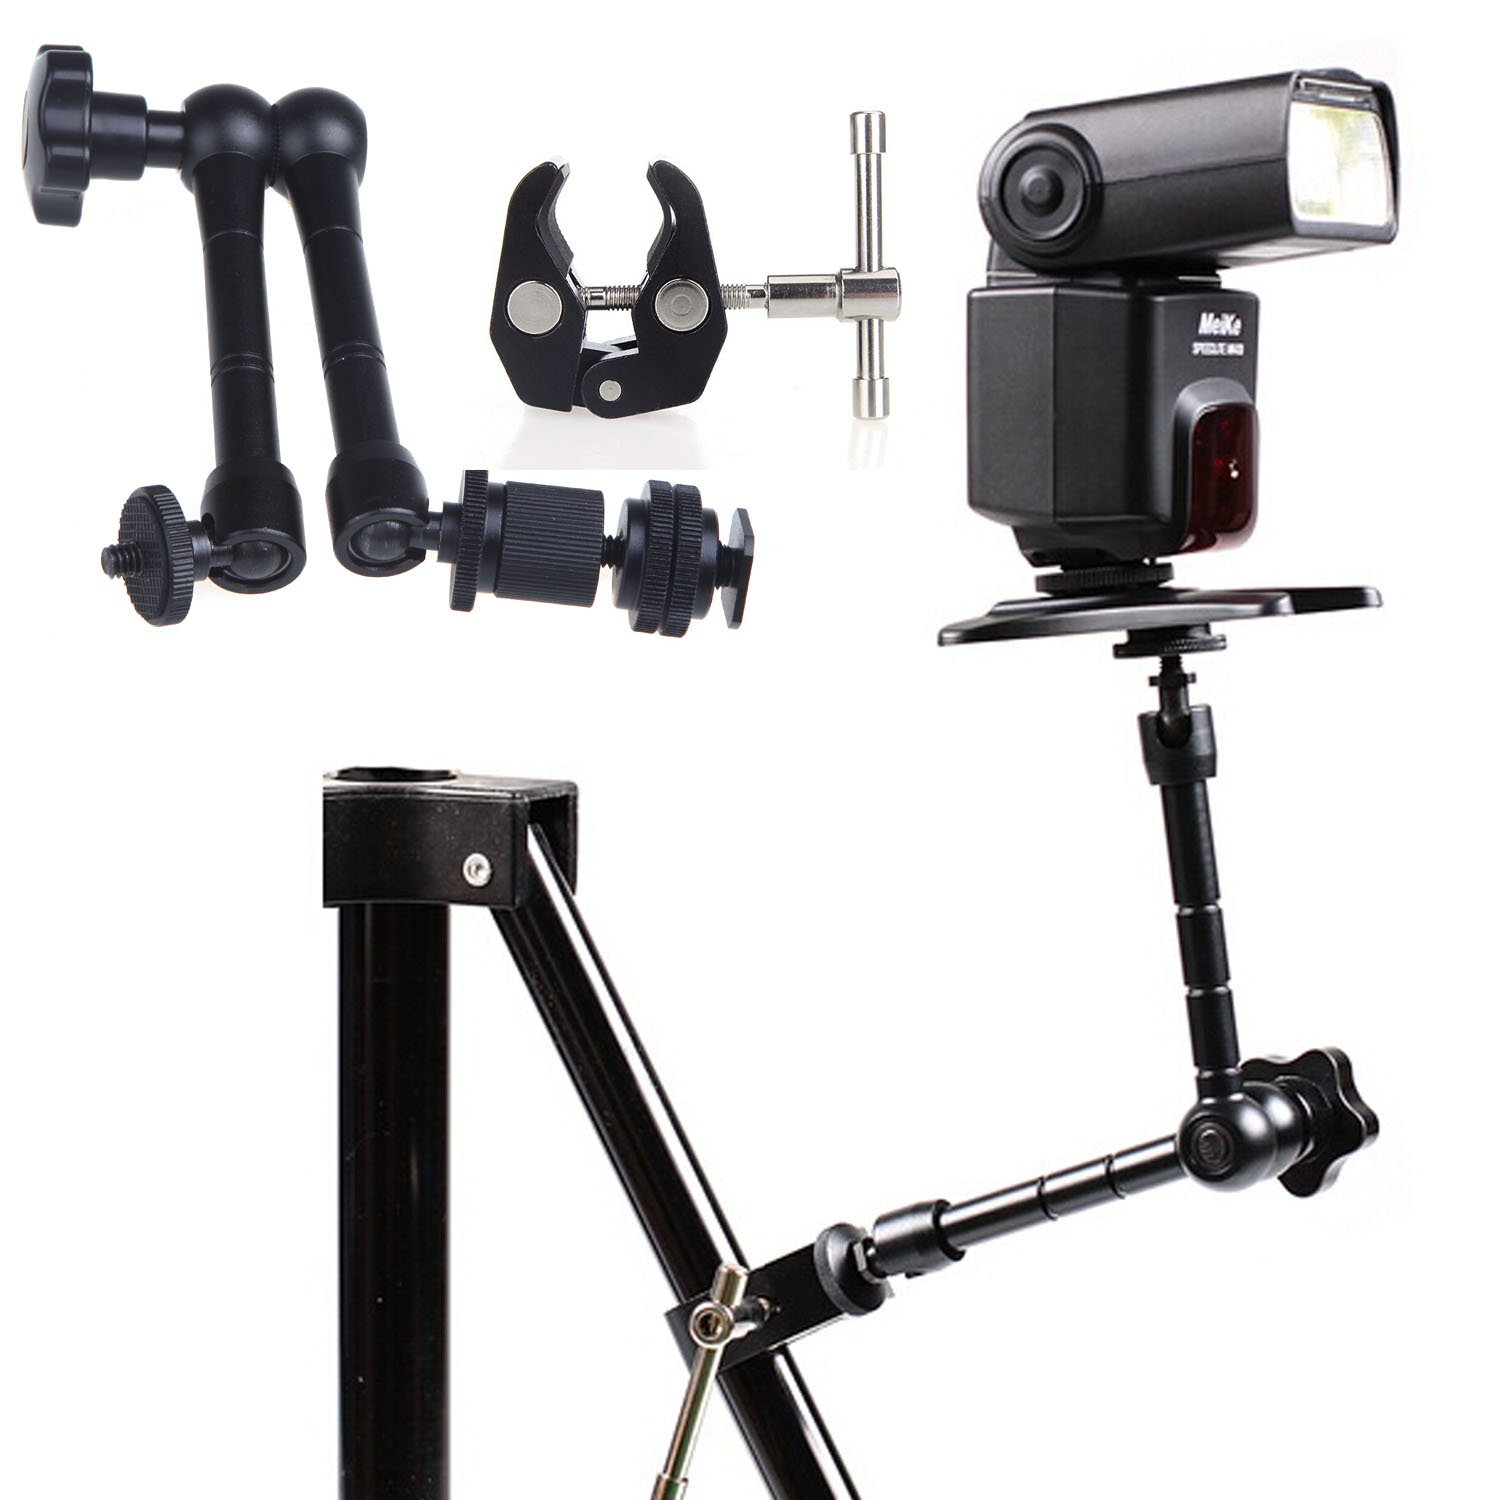 EC™ 11 inch Articulating Magic Arm + Super Crab Clamp Pliers Clip with 1/4'' and 3/8'' for DSLR Rig Camera to Monitor LED